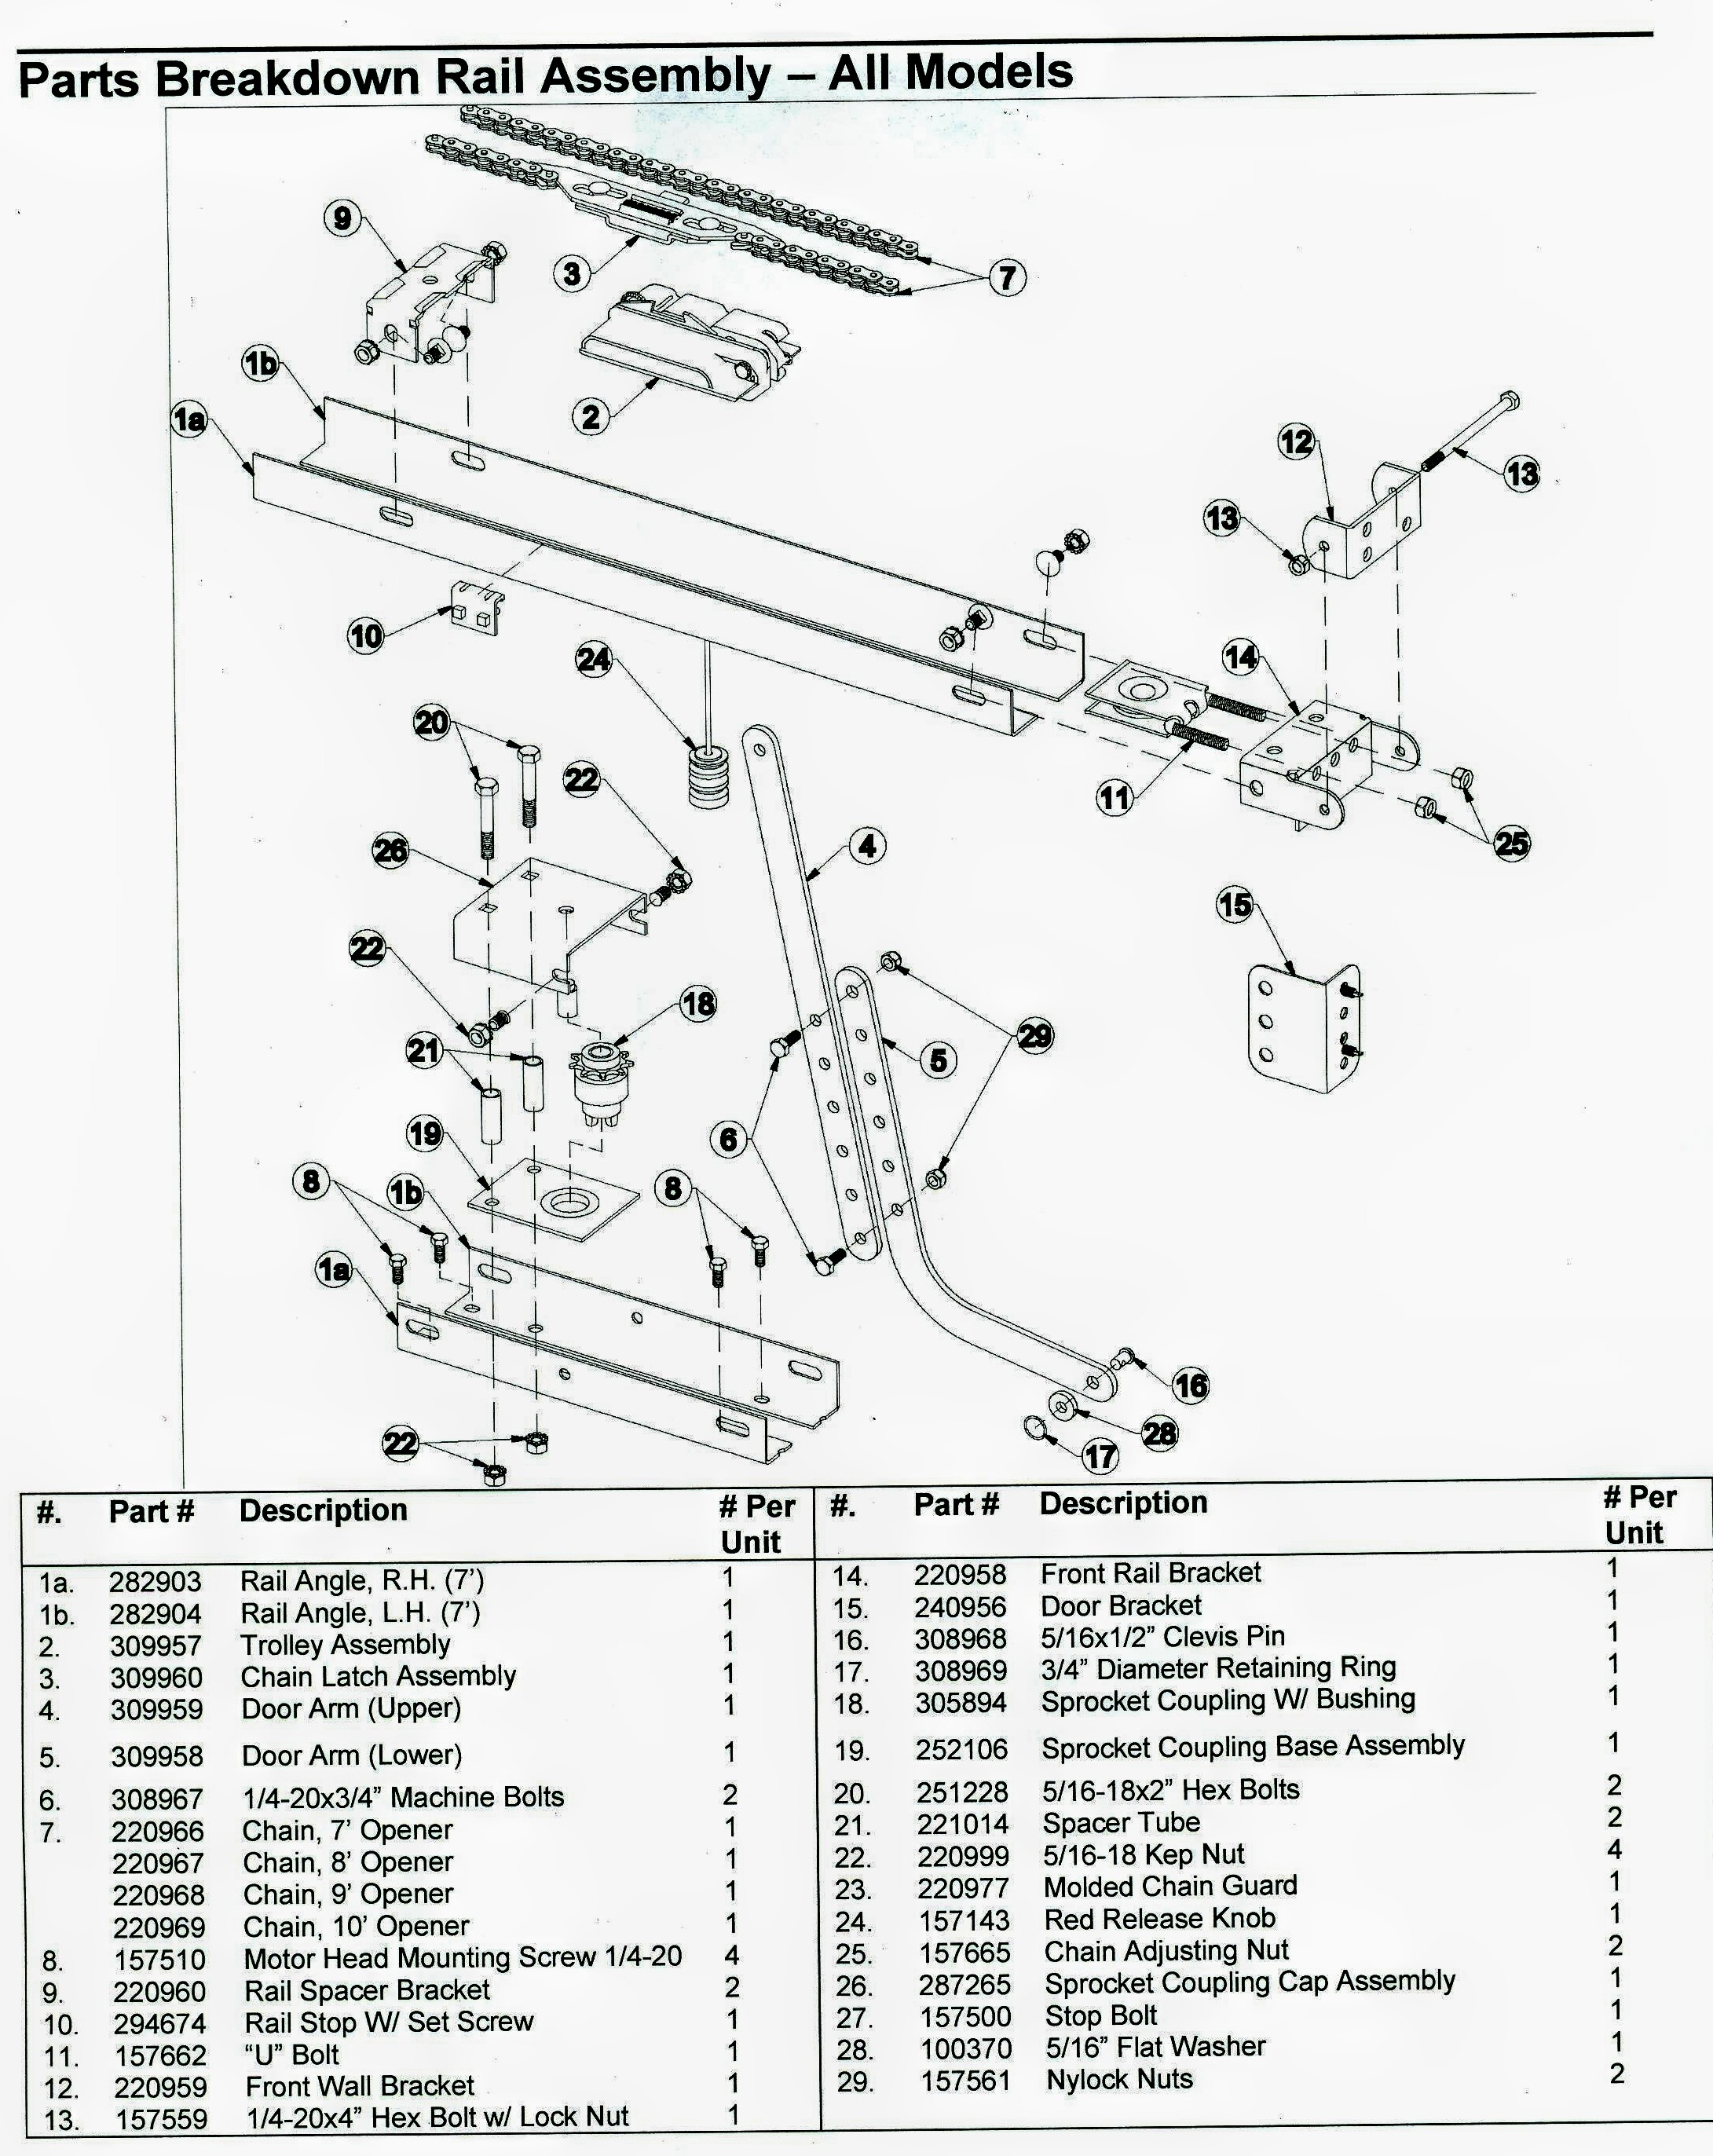 Garage Door Opener Parts Diagram Genie Garage Door Opener Parts Diagram Automotive Parts